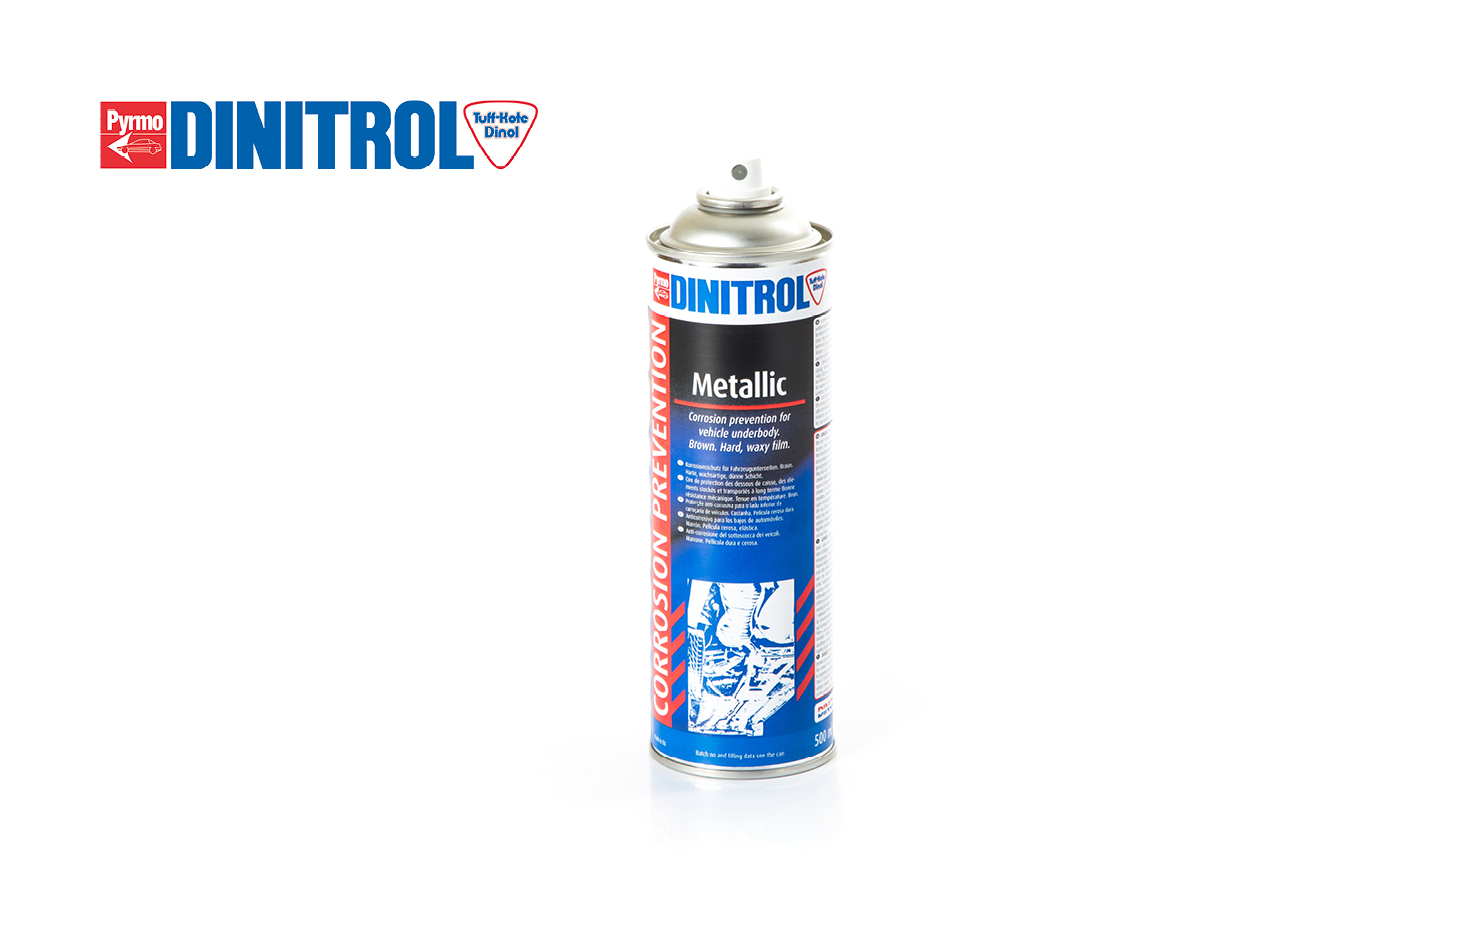 Dinitol metallic waxy brown car underseal product with good heat resistance ideal for highly corrosive conditions